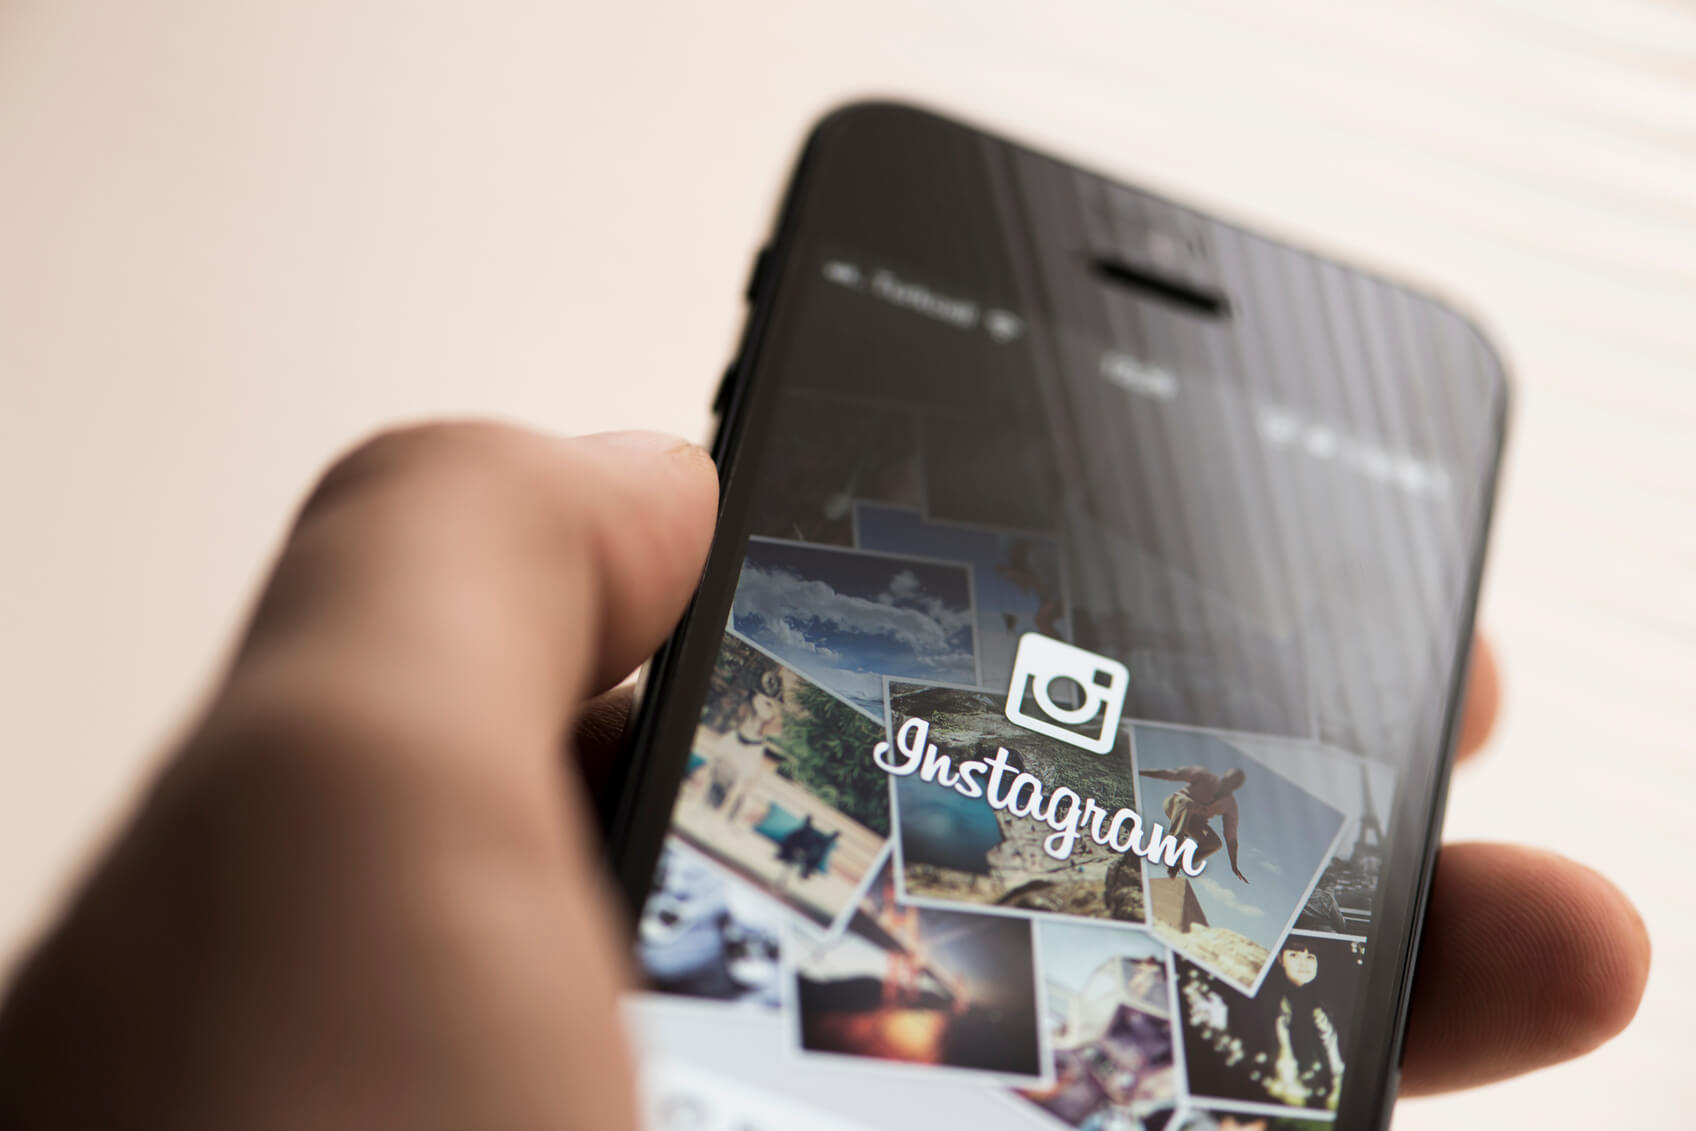 Instagram's Online Filter Tool Does Not Fully Protect Users & Brands